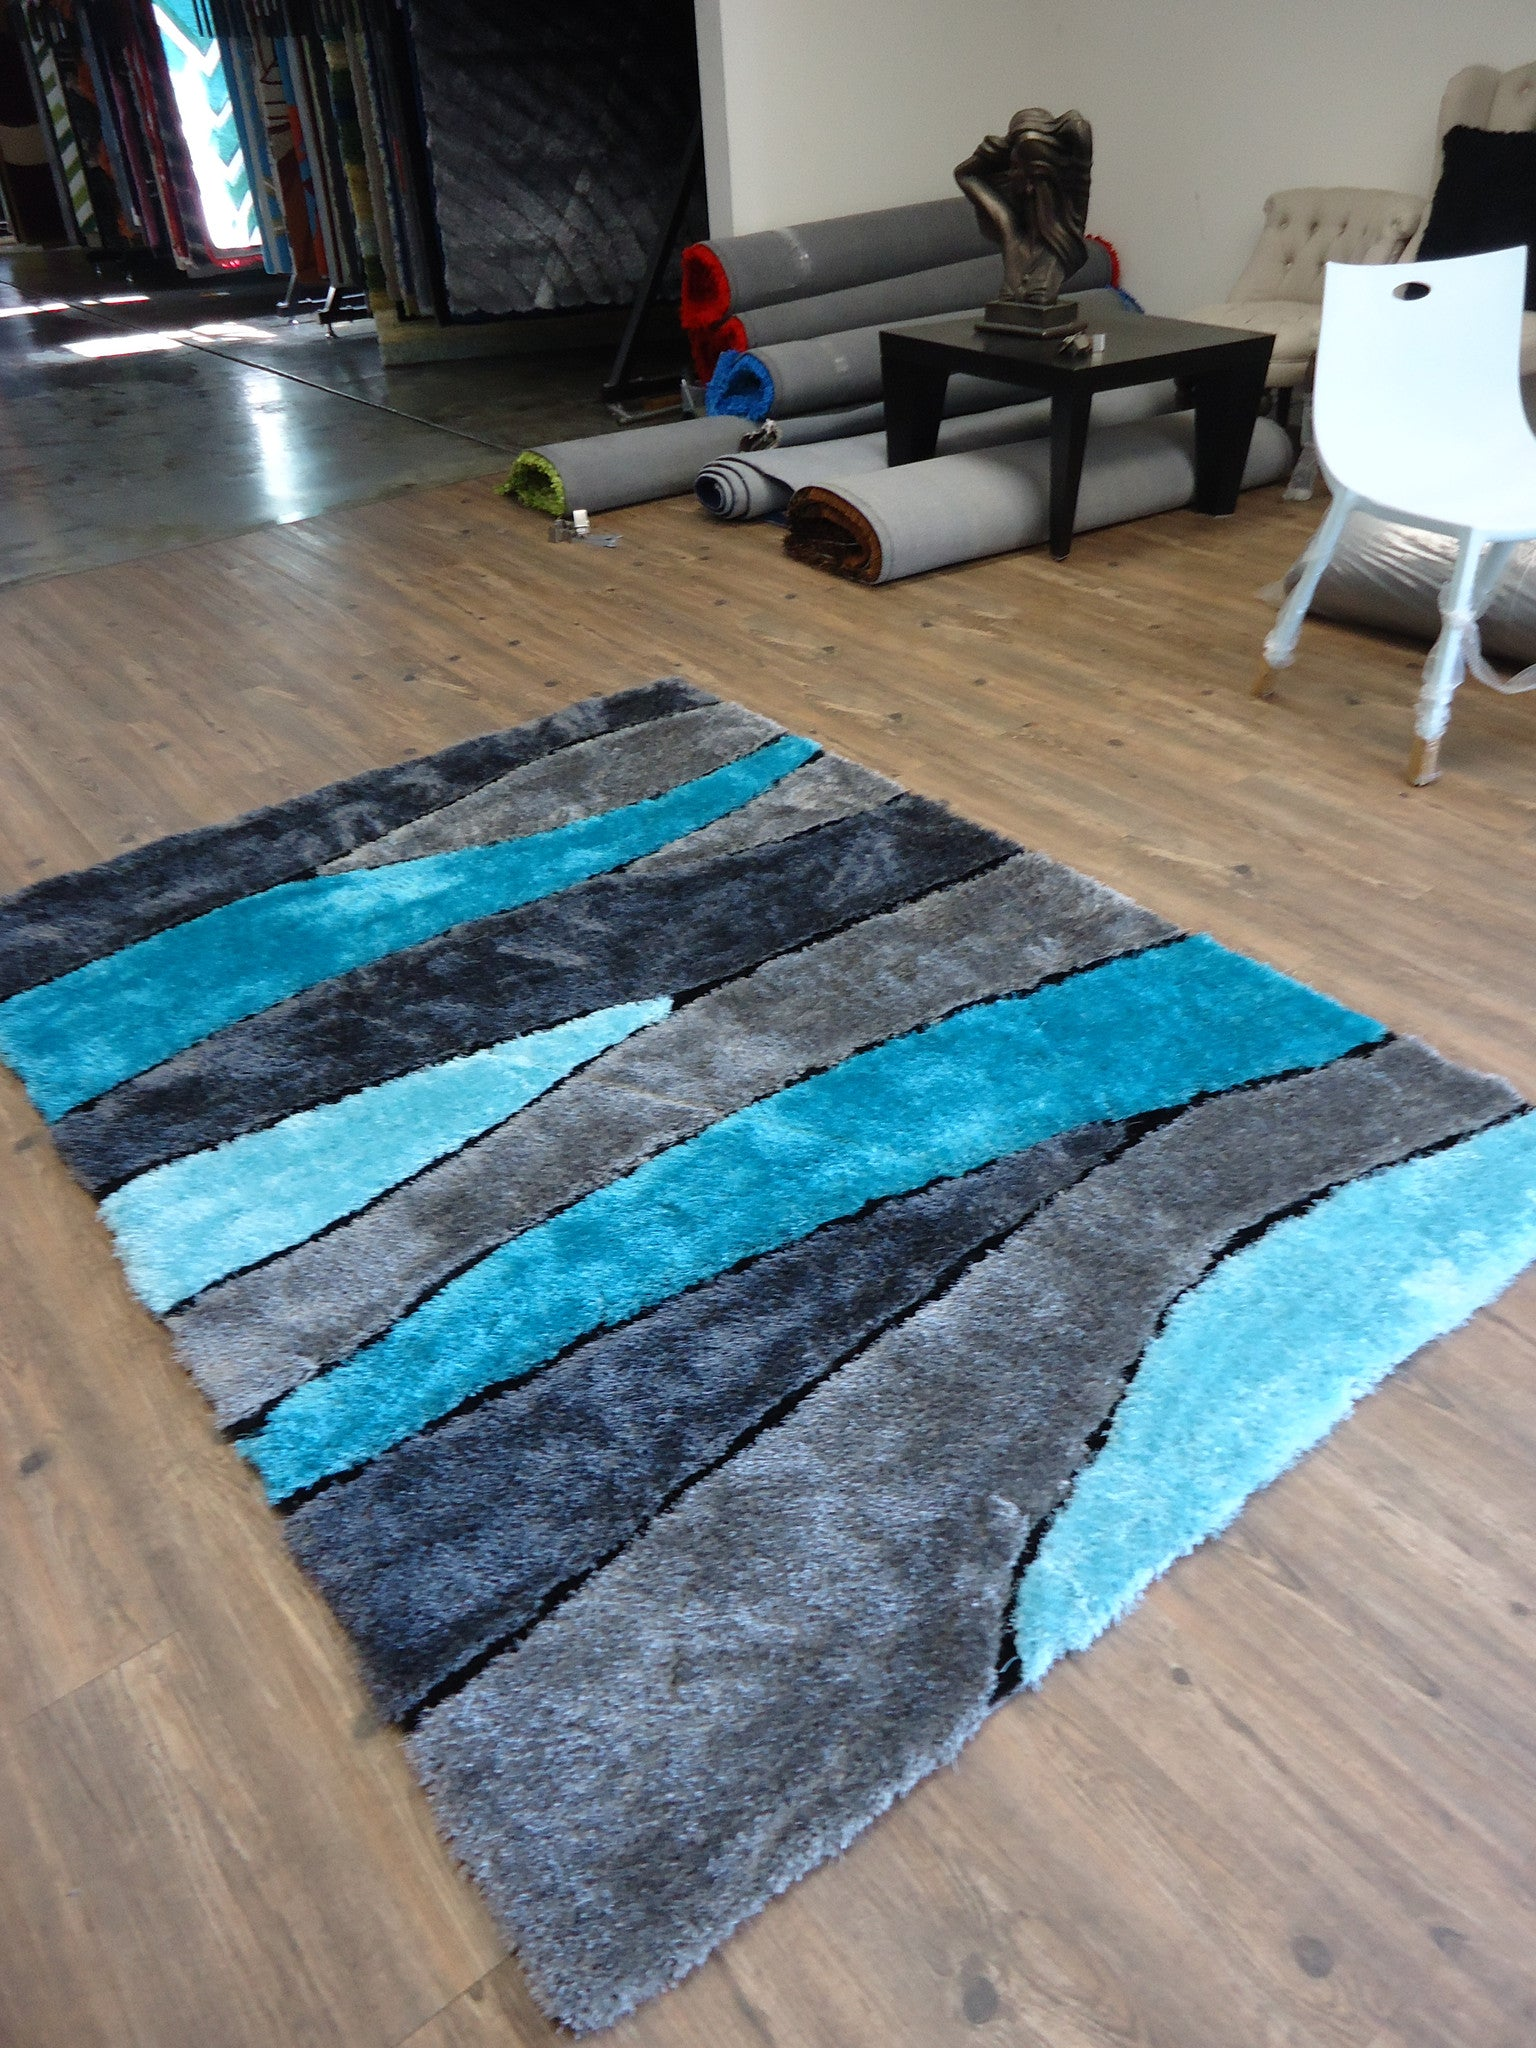 ... Handmade Vibrant Gray With Blue Shag Area Rug With Hand Carved Design 5  X 7 Ft ...